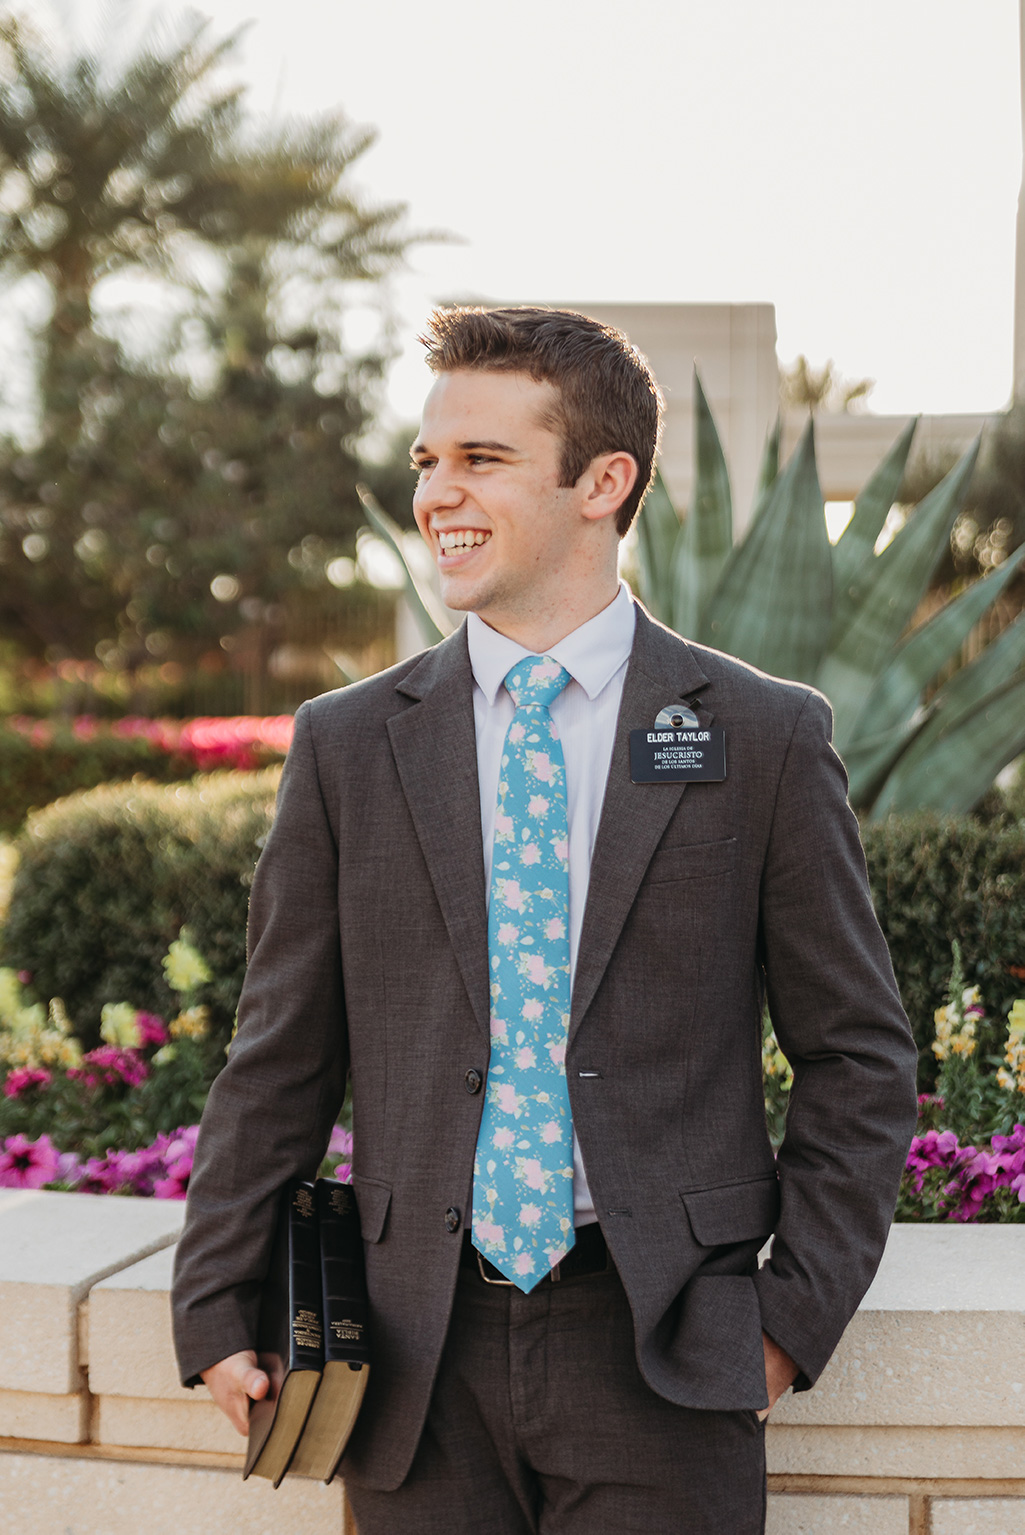 LDS missionary photography at gilbert az temple